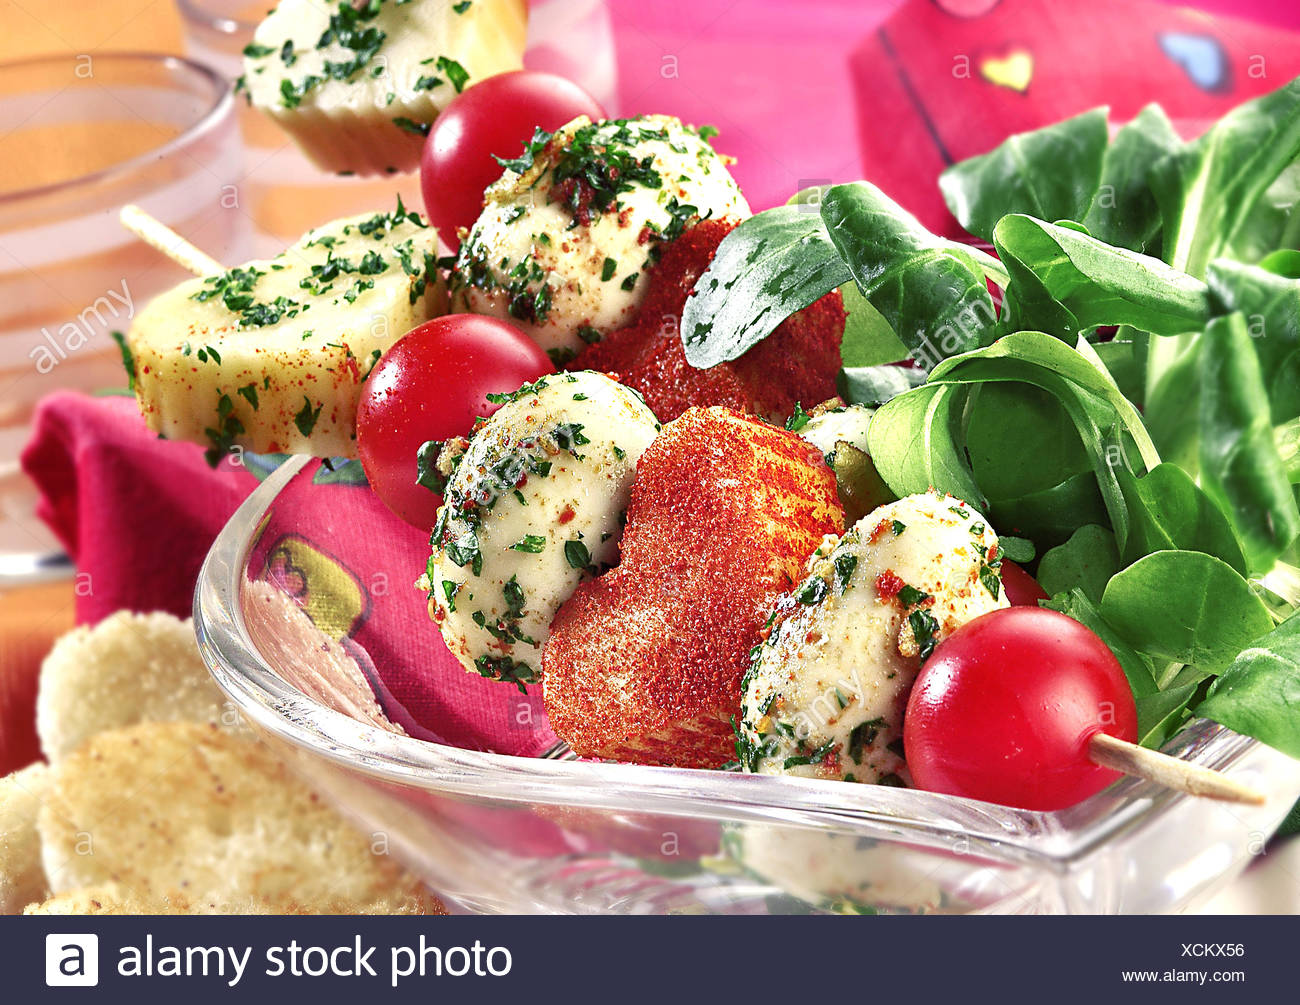 St. Valentine Skewers with Cheese and Eggs - Stock Image